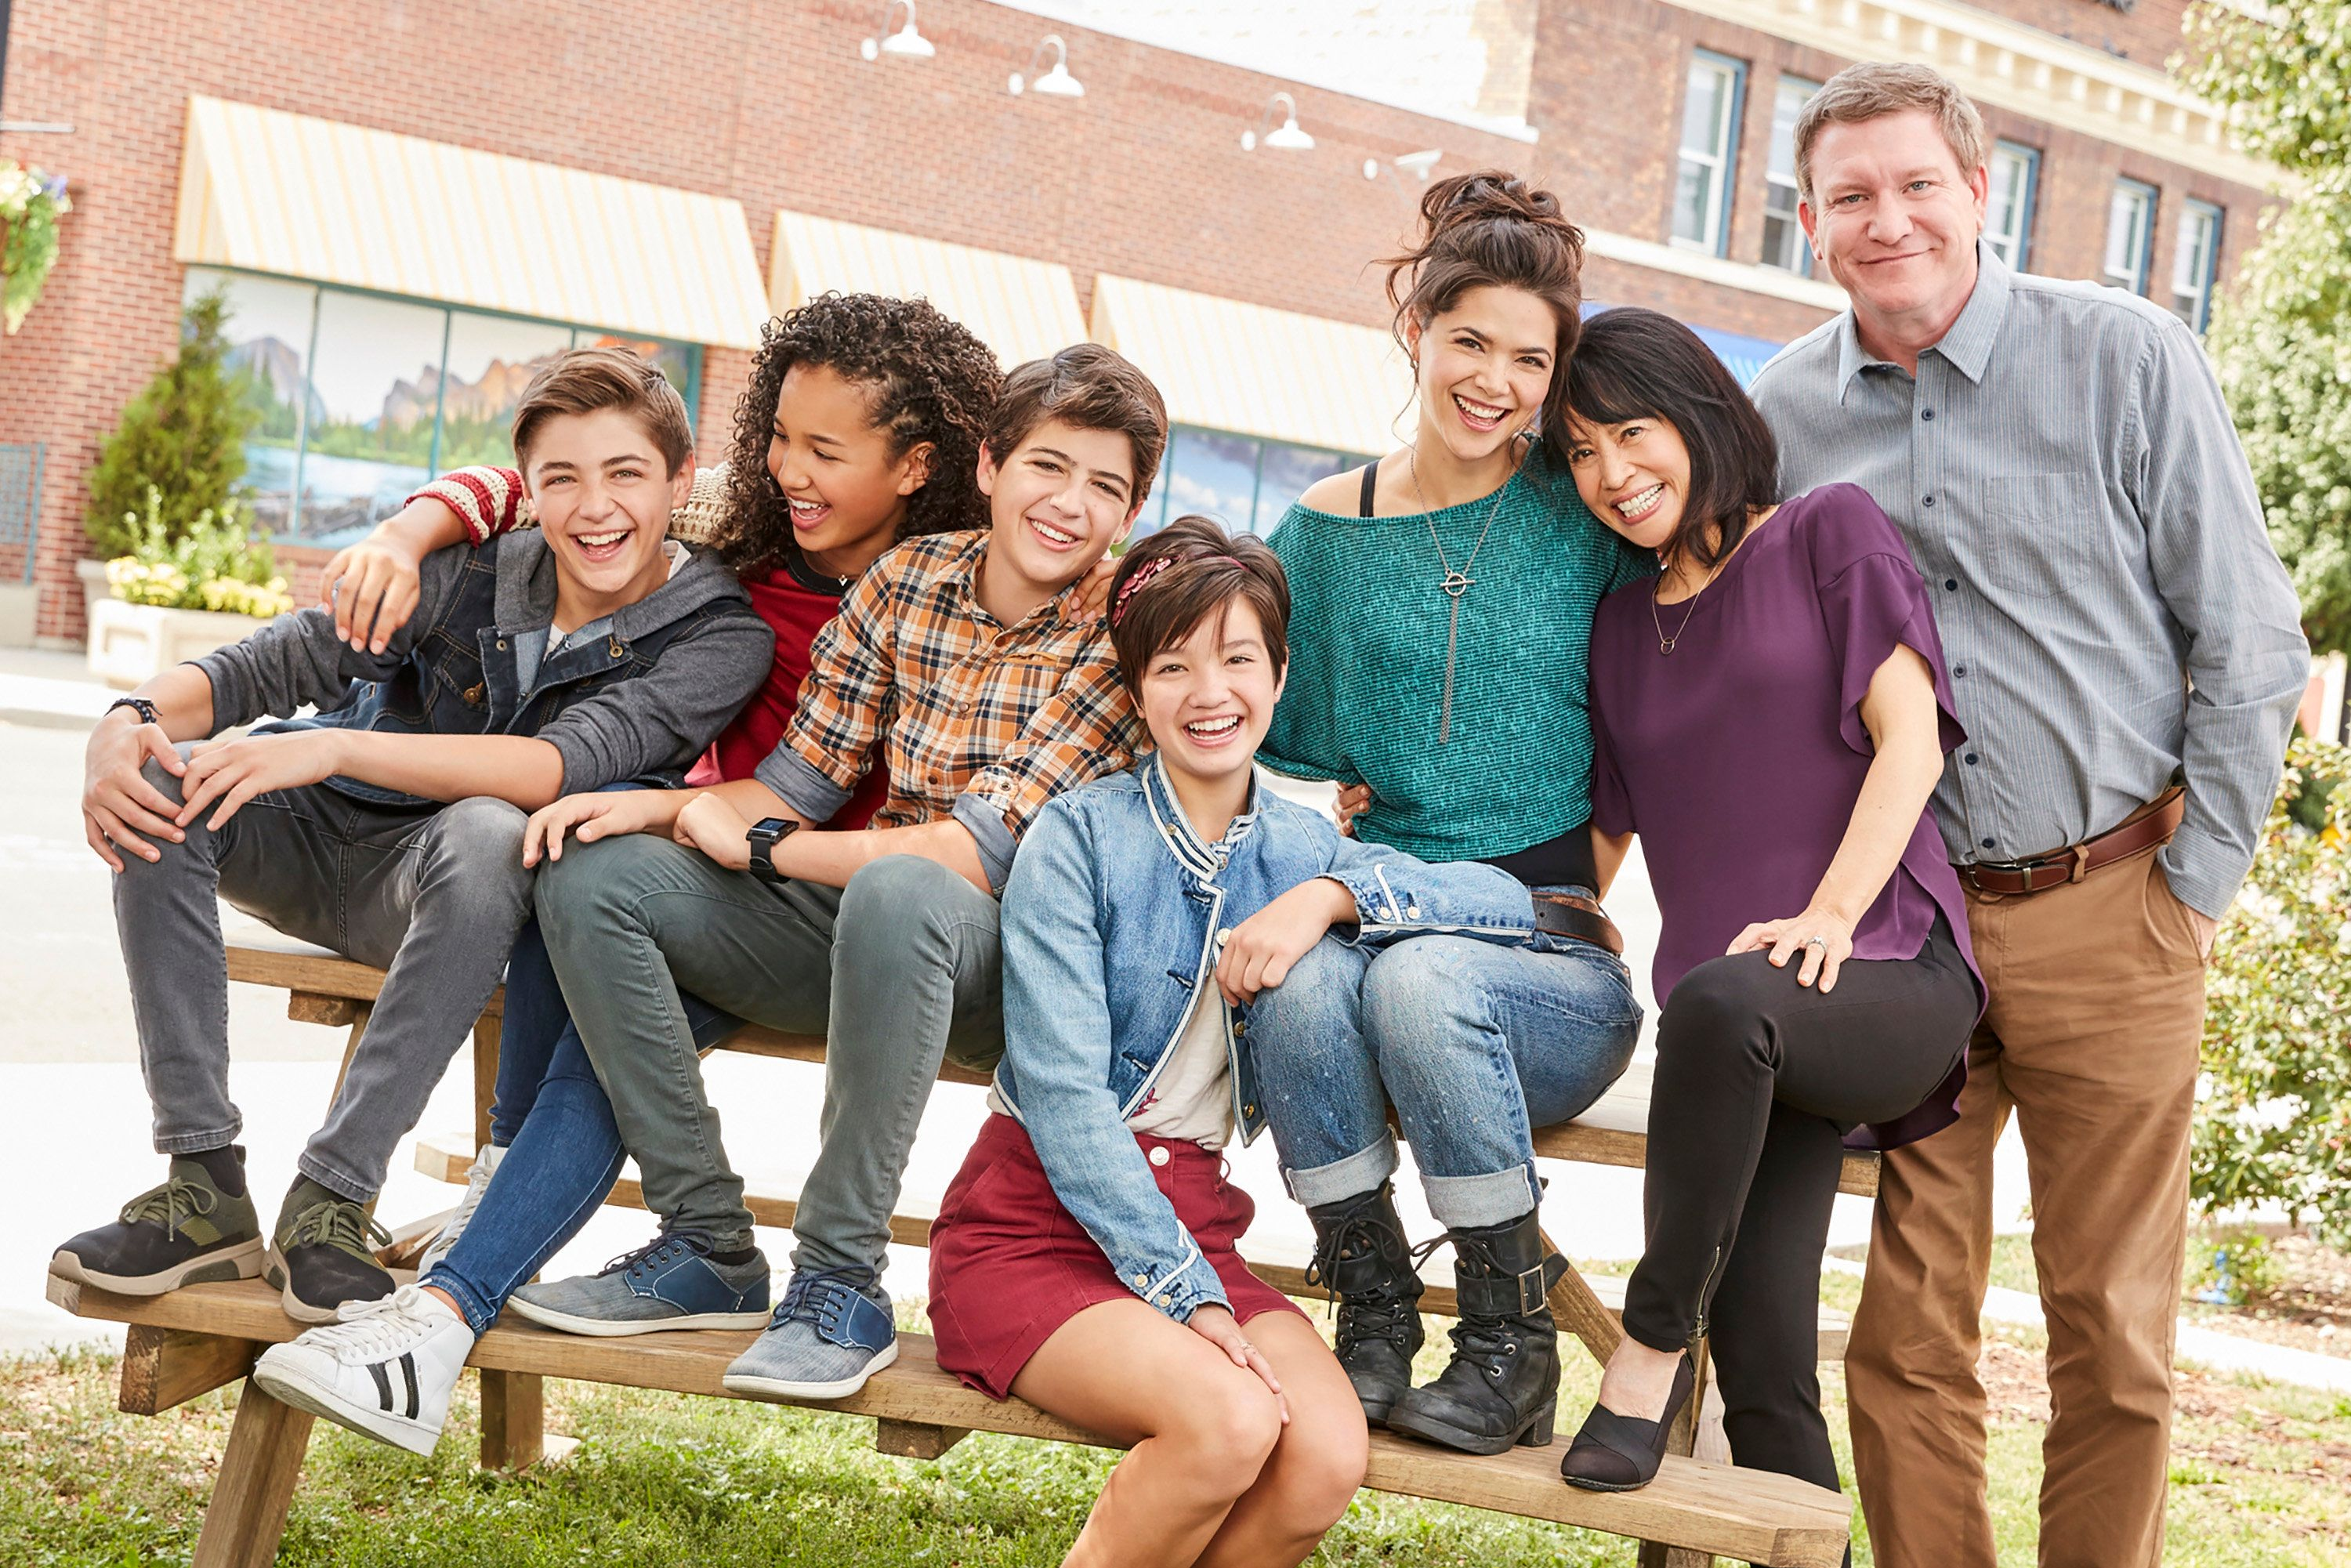 ANDI MACK - 'Andi Mack,' the series that has captivated kids and families, makes its season premiere with a one-hour episode FRIDAY, OCTOBER 27 (8:009:00 p.m. EDT), on Disney Channel and the Disney Channel app (9:00 p.m. EDT). Created and executive produced by writer Terri Minsky ('Lizzie McGuire') and filmed in Salt Lake City, Utah, the series has been noted for its deft handling of realistic and optimistic stories about a girl, her friends and family. (Craig Sjodin via Getty Images) ASHER ANGEL, SOFIA WYLIE, JOSHUA RUSH, PEYTON ELIZABETH LEE, LILAN BOWDEN, LAUREN TOM, STONEY WESTMORELAND